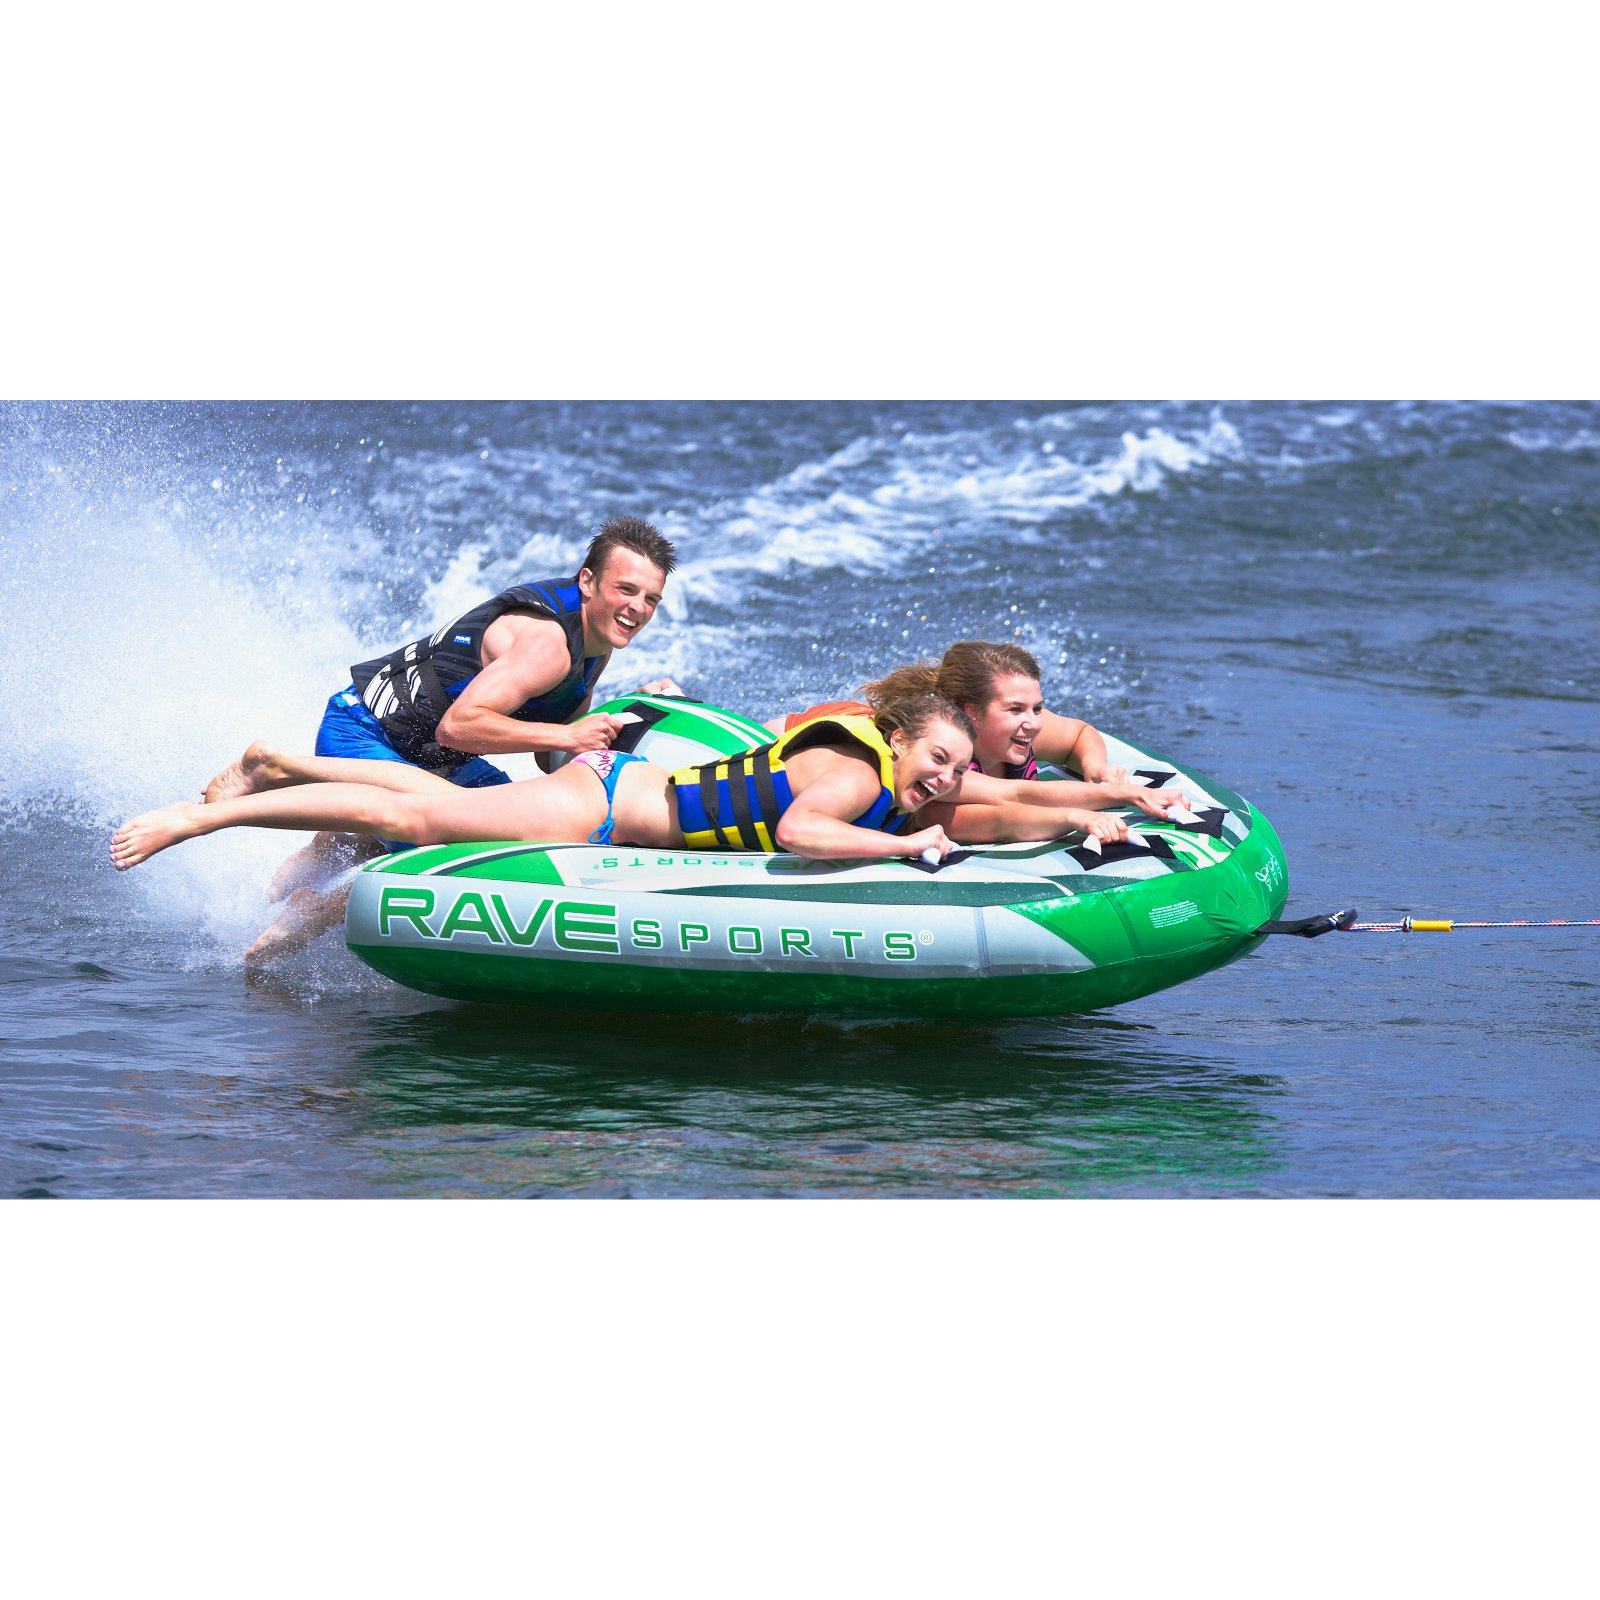 Rave Sport Wingman 3-Person Towable, Green by Generic